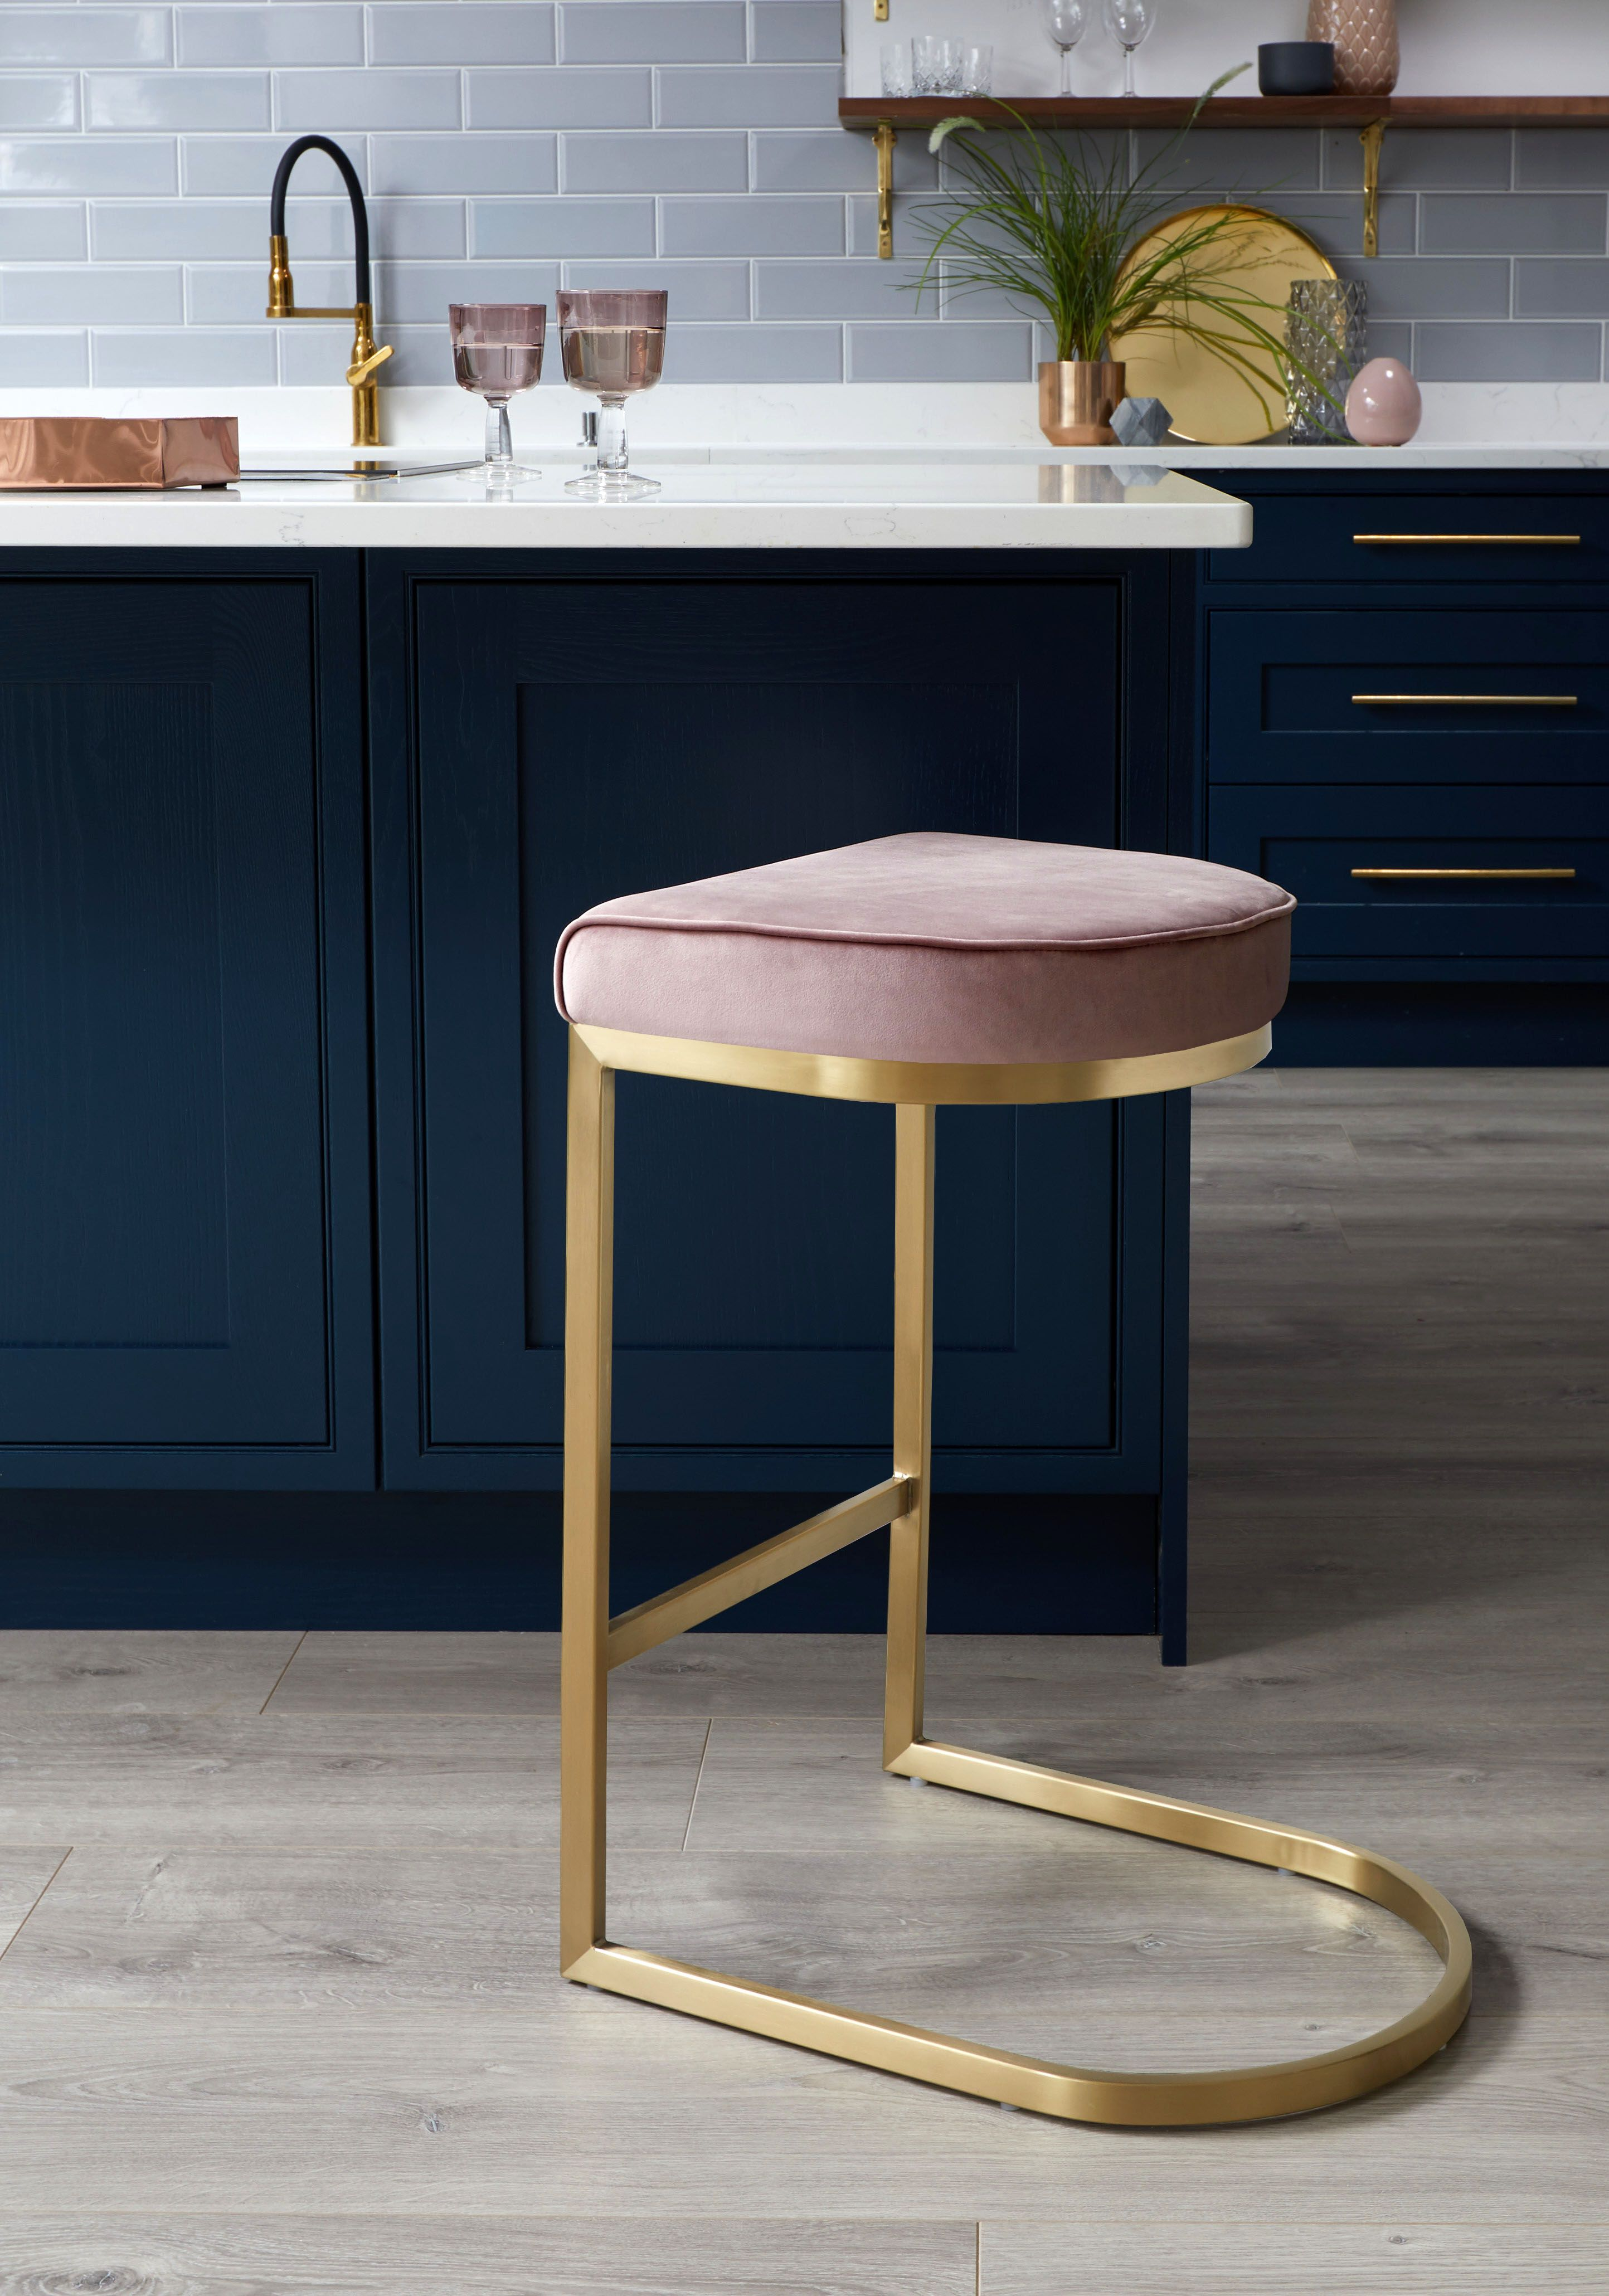 Form Brass And Velvet Bar Stools Kitchen Bar Stools Pink Bar Stools Brass Bar Stools